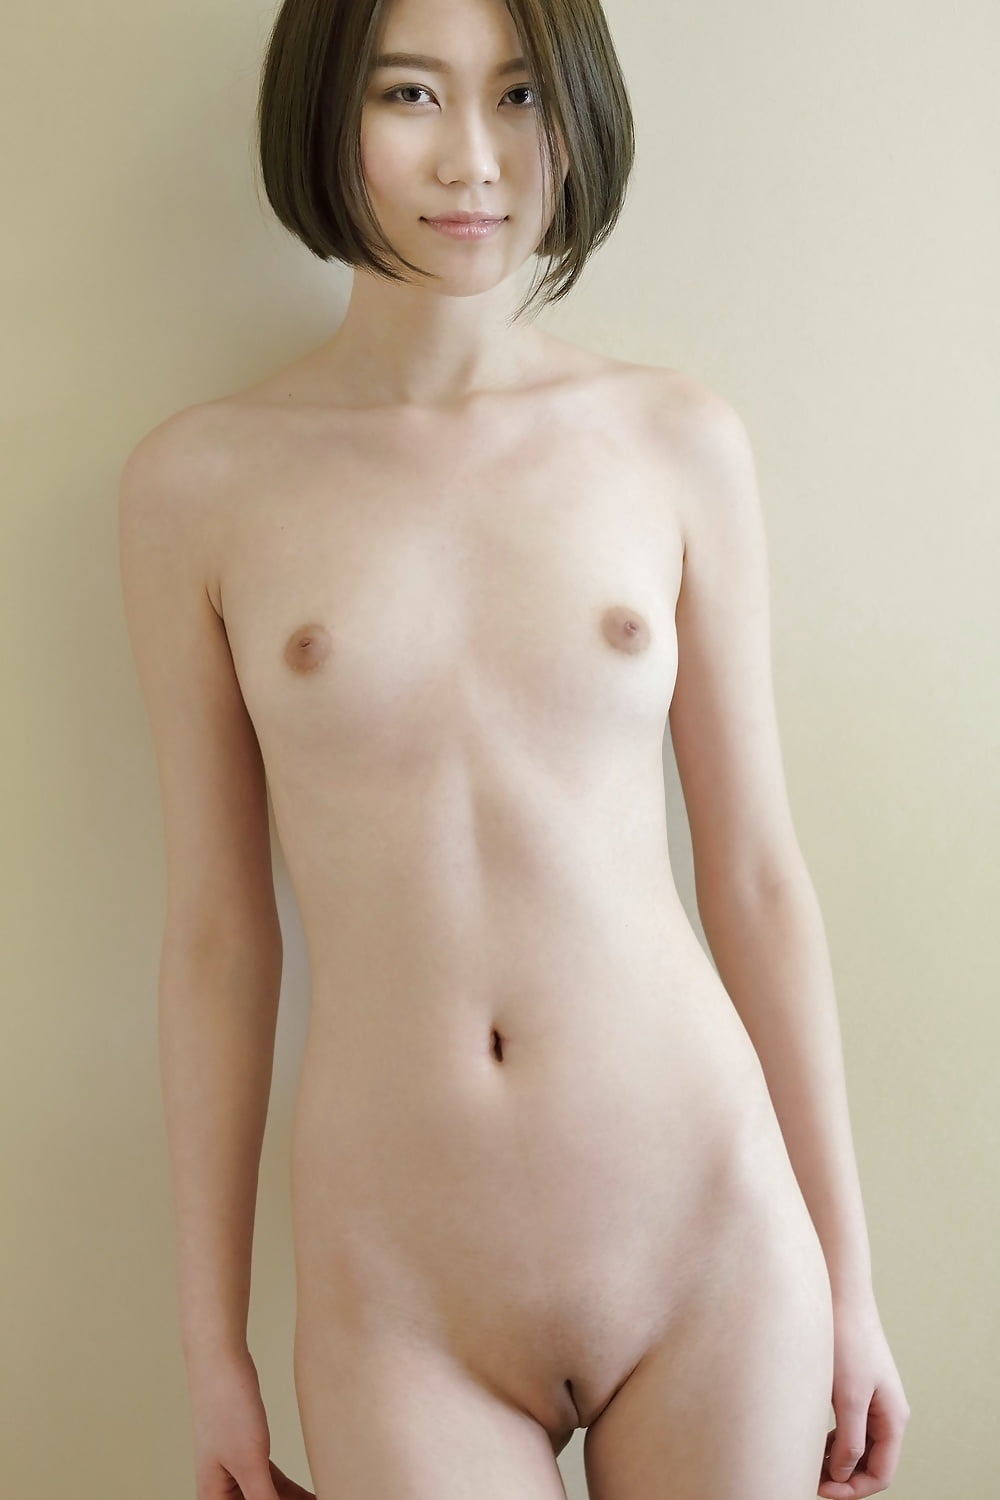 Small boobs chinese naked